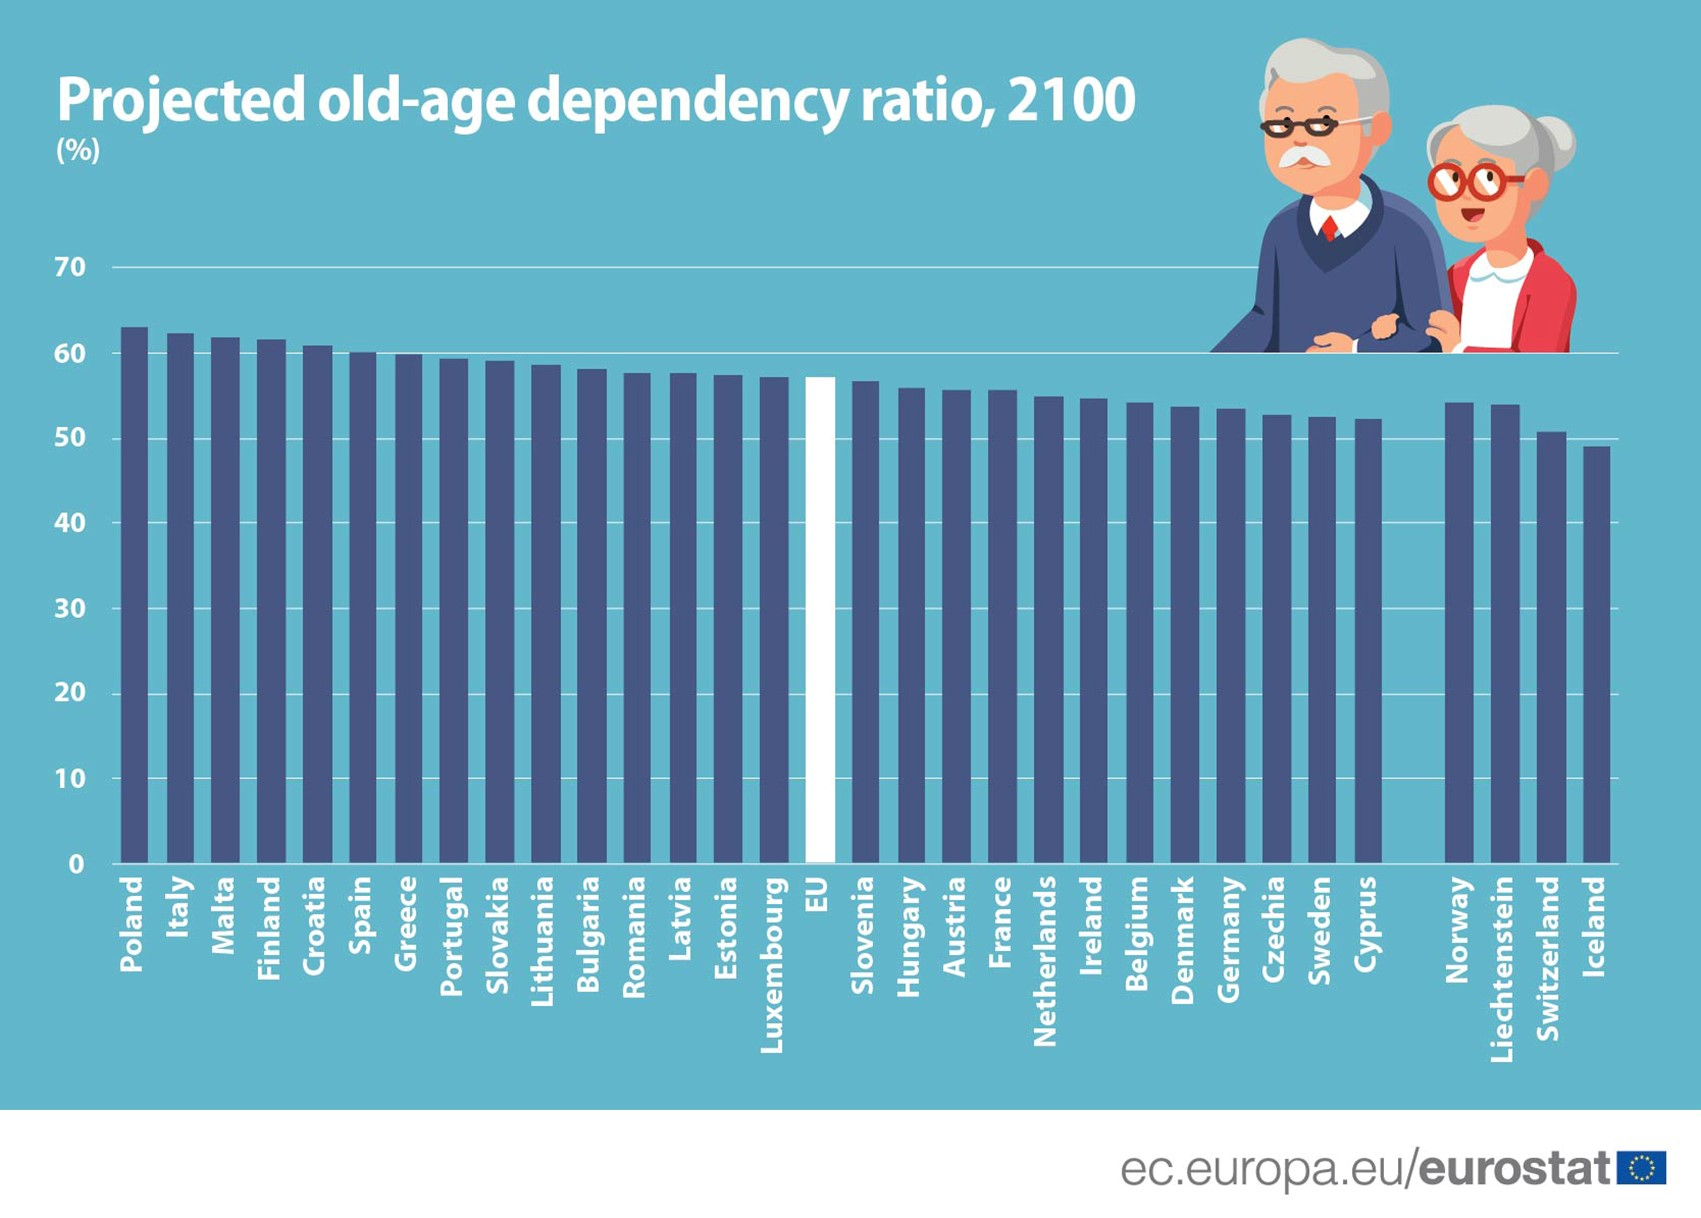 Projected old-age dependency ratio, 2100